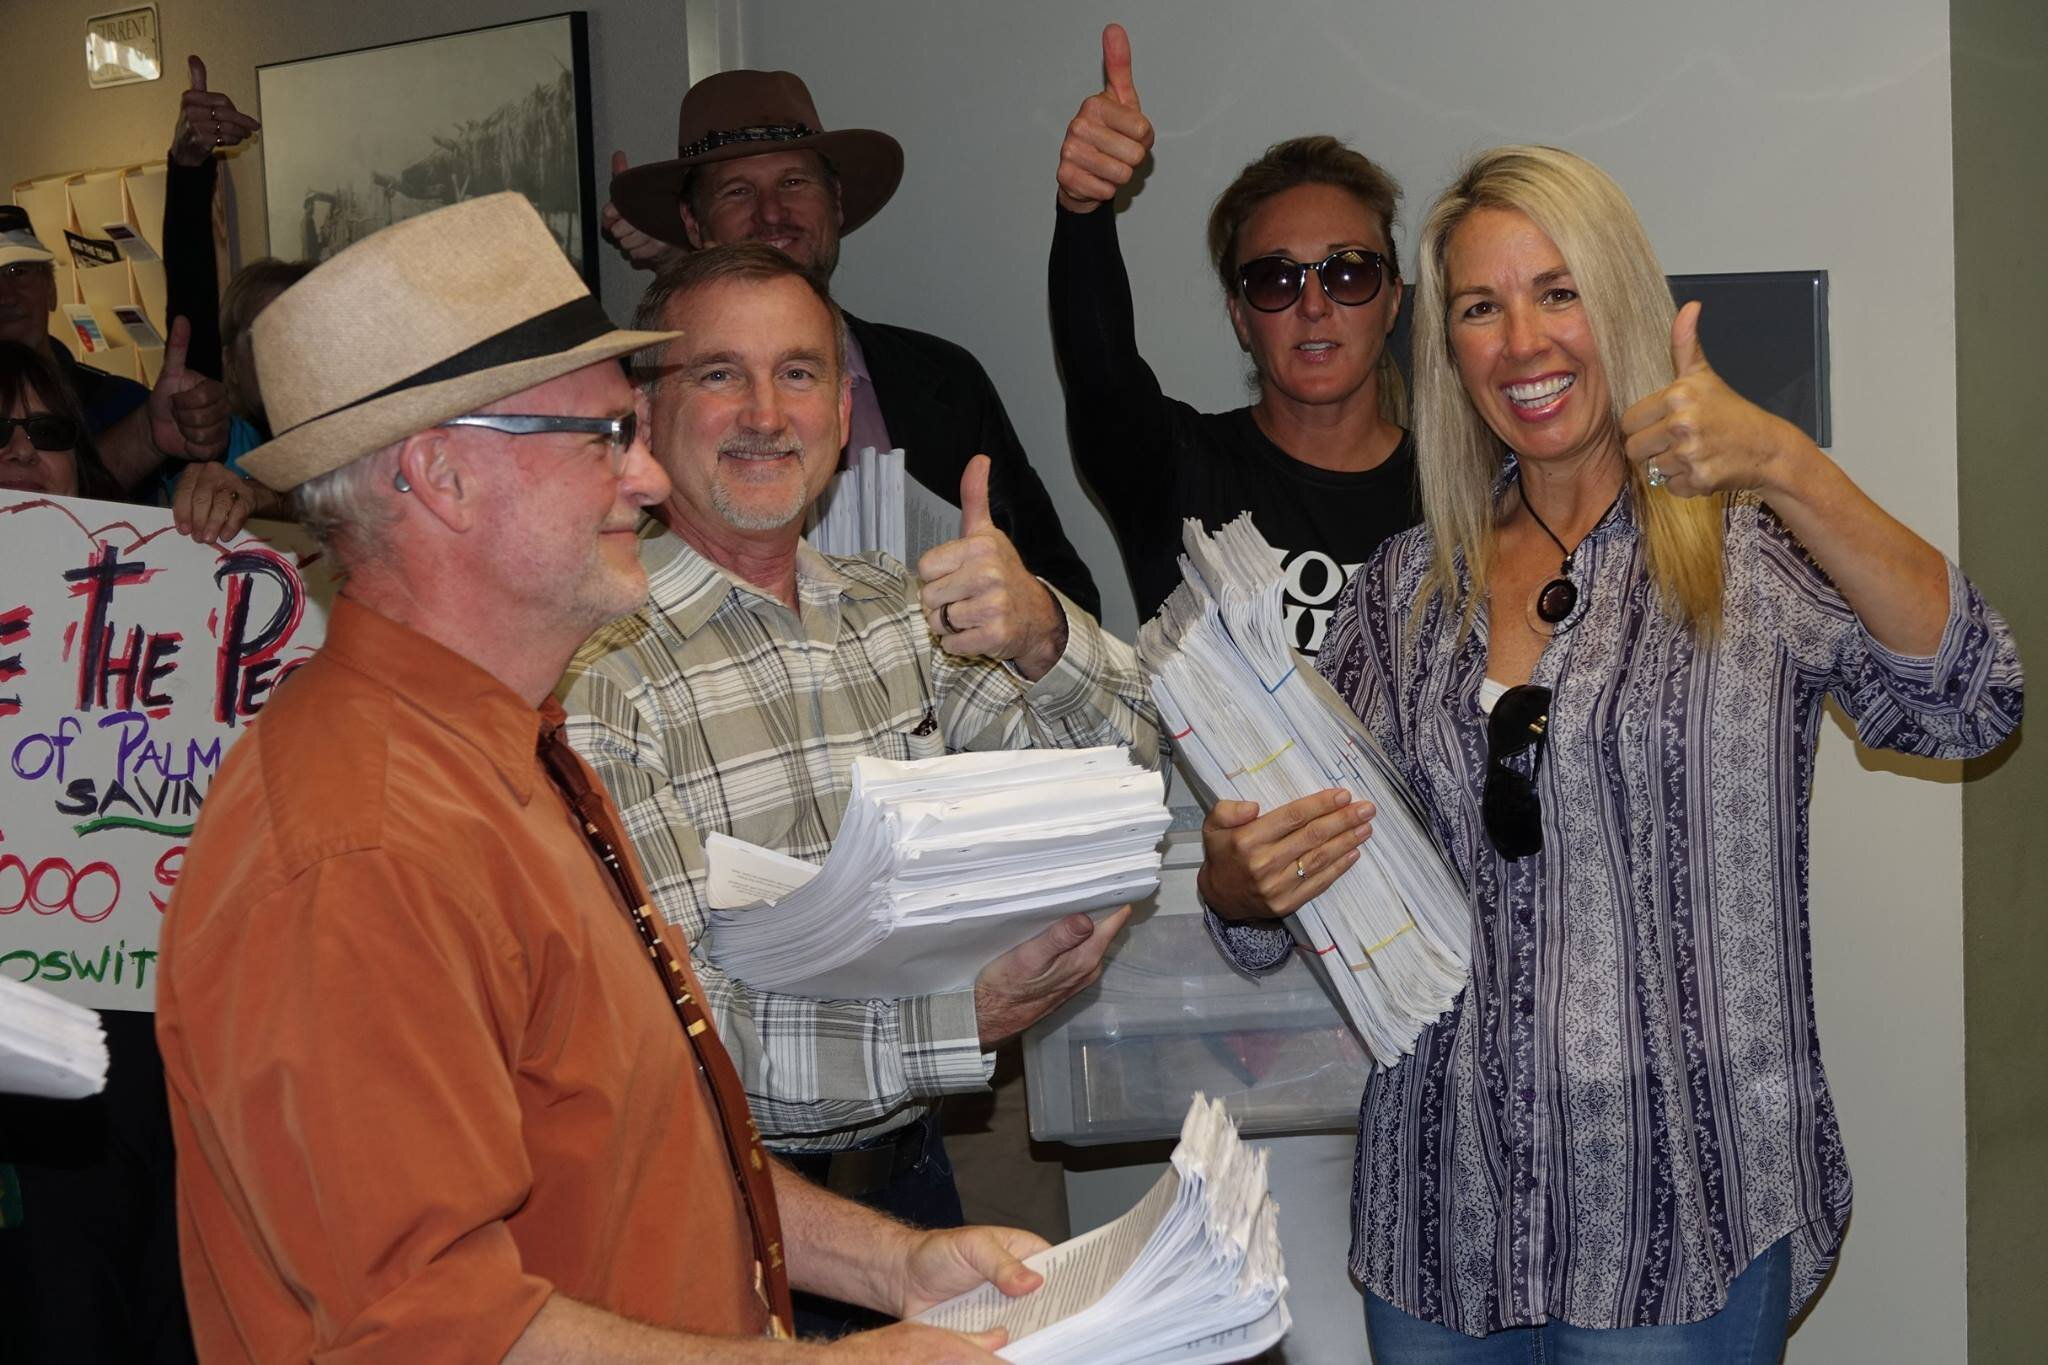 Save Oswit Canyon presents 5000 petition signatures to City Hall to stop development in Oswit.